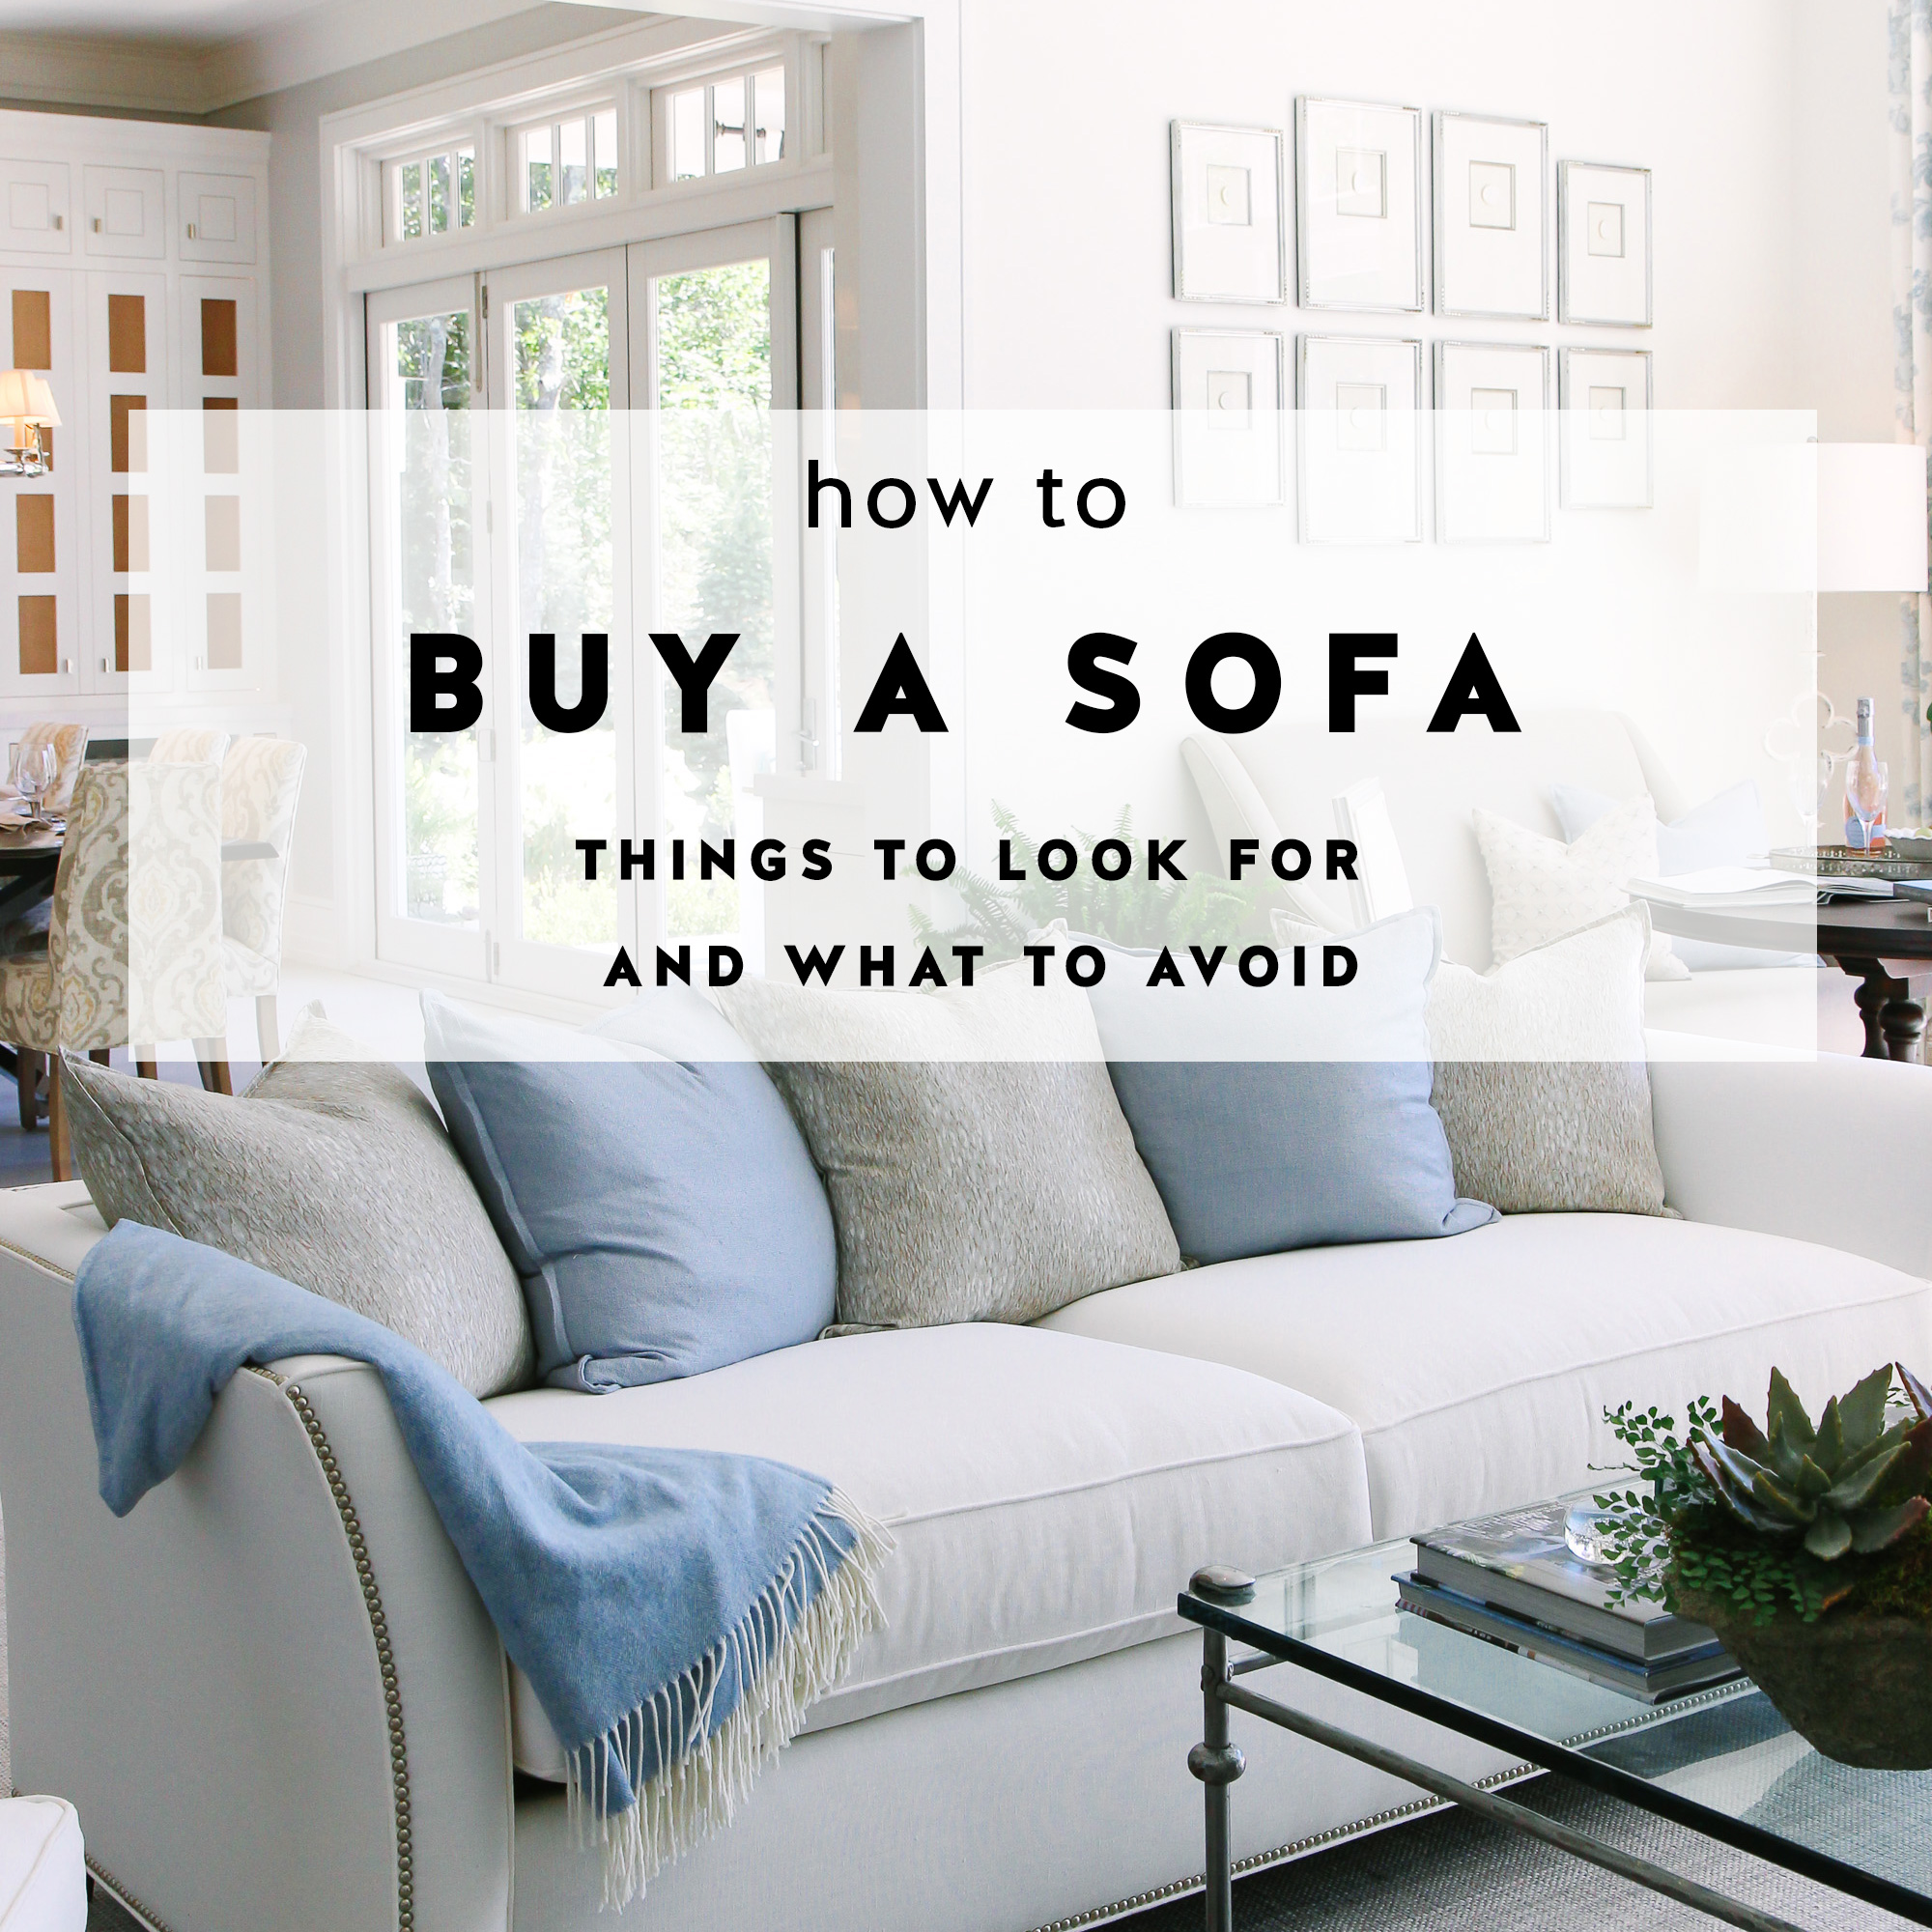 How To Buy A Couch how to buy a sofa: what to look for and what to avoid - york avenue